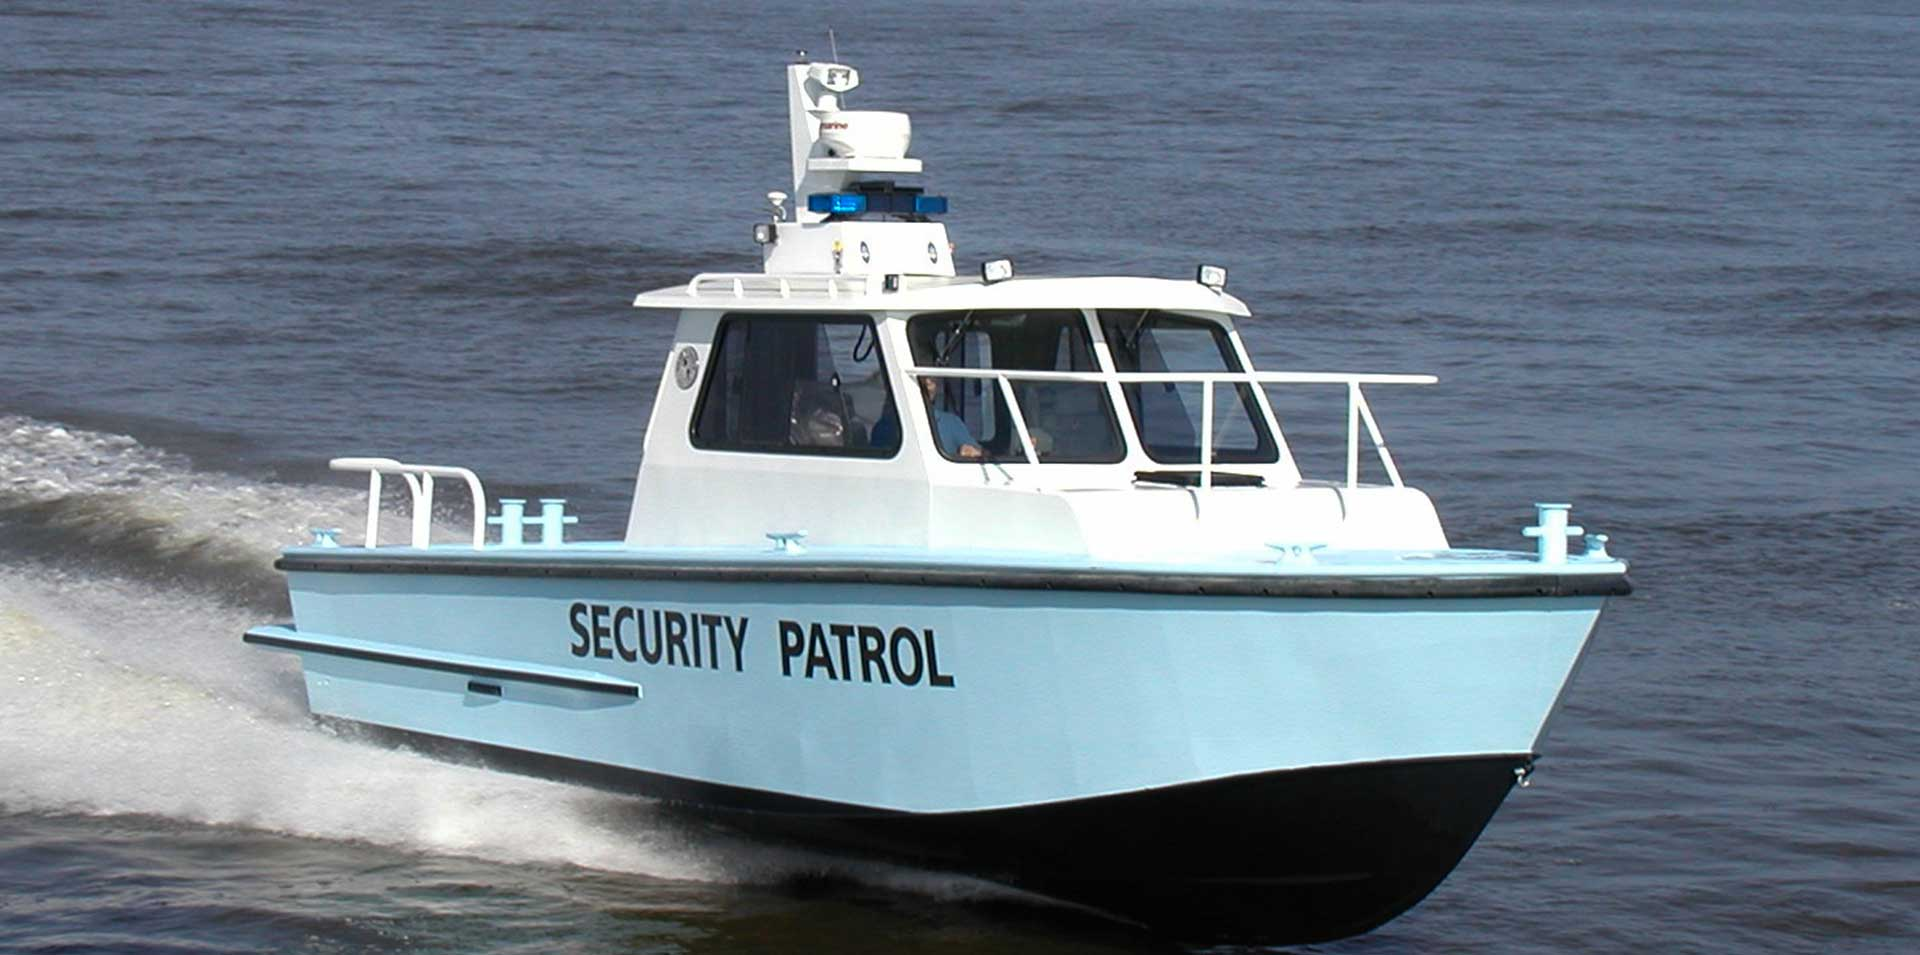 Silver Ships Endeavor Series security patrol boat on the water